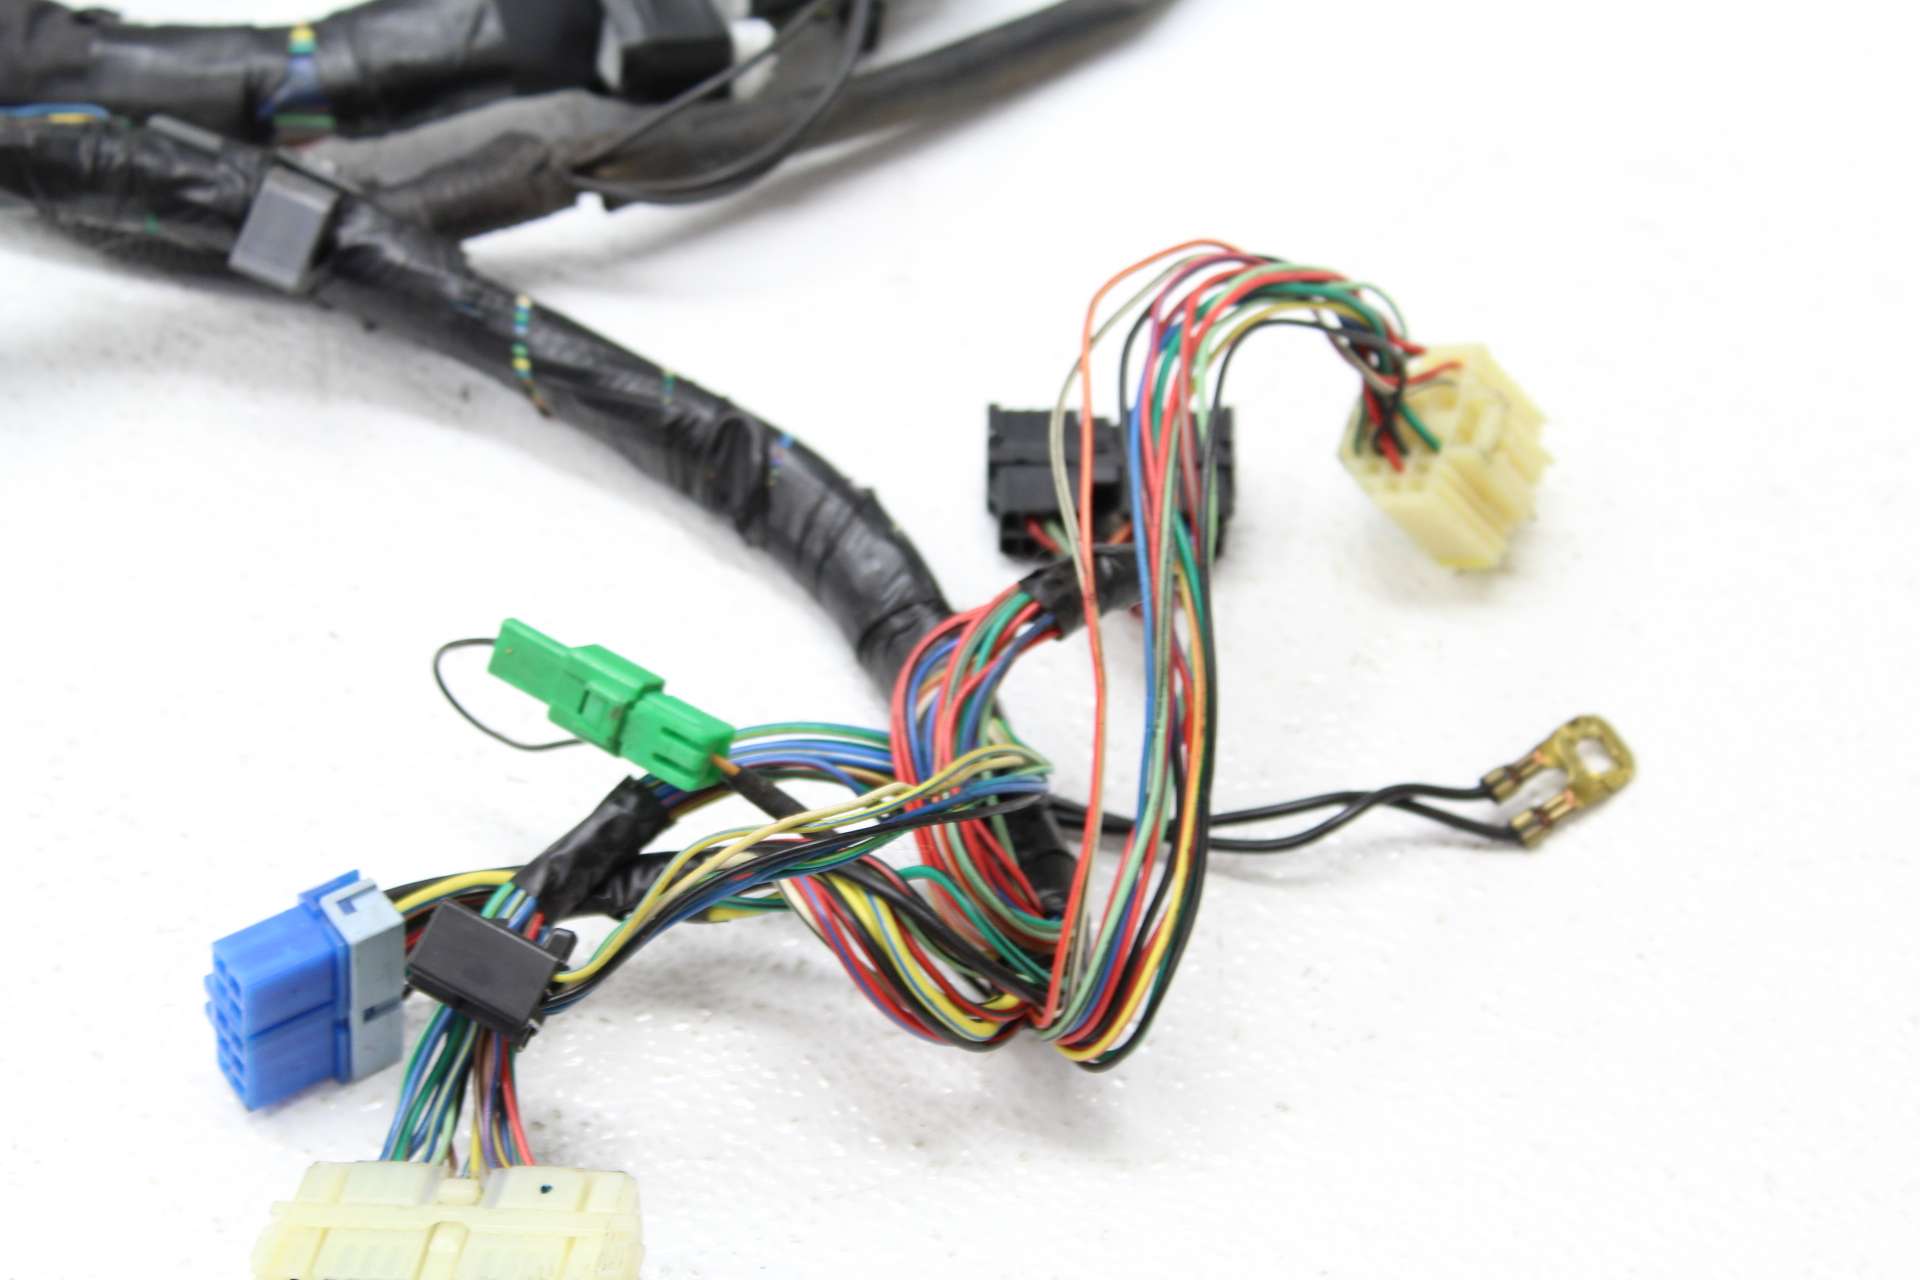 1998 2001 Subaru Impreza 25 Rs Bulk Head Wiring Harness A T Under 2014 Forester Dash Oem